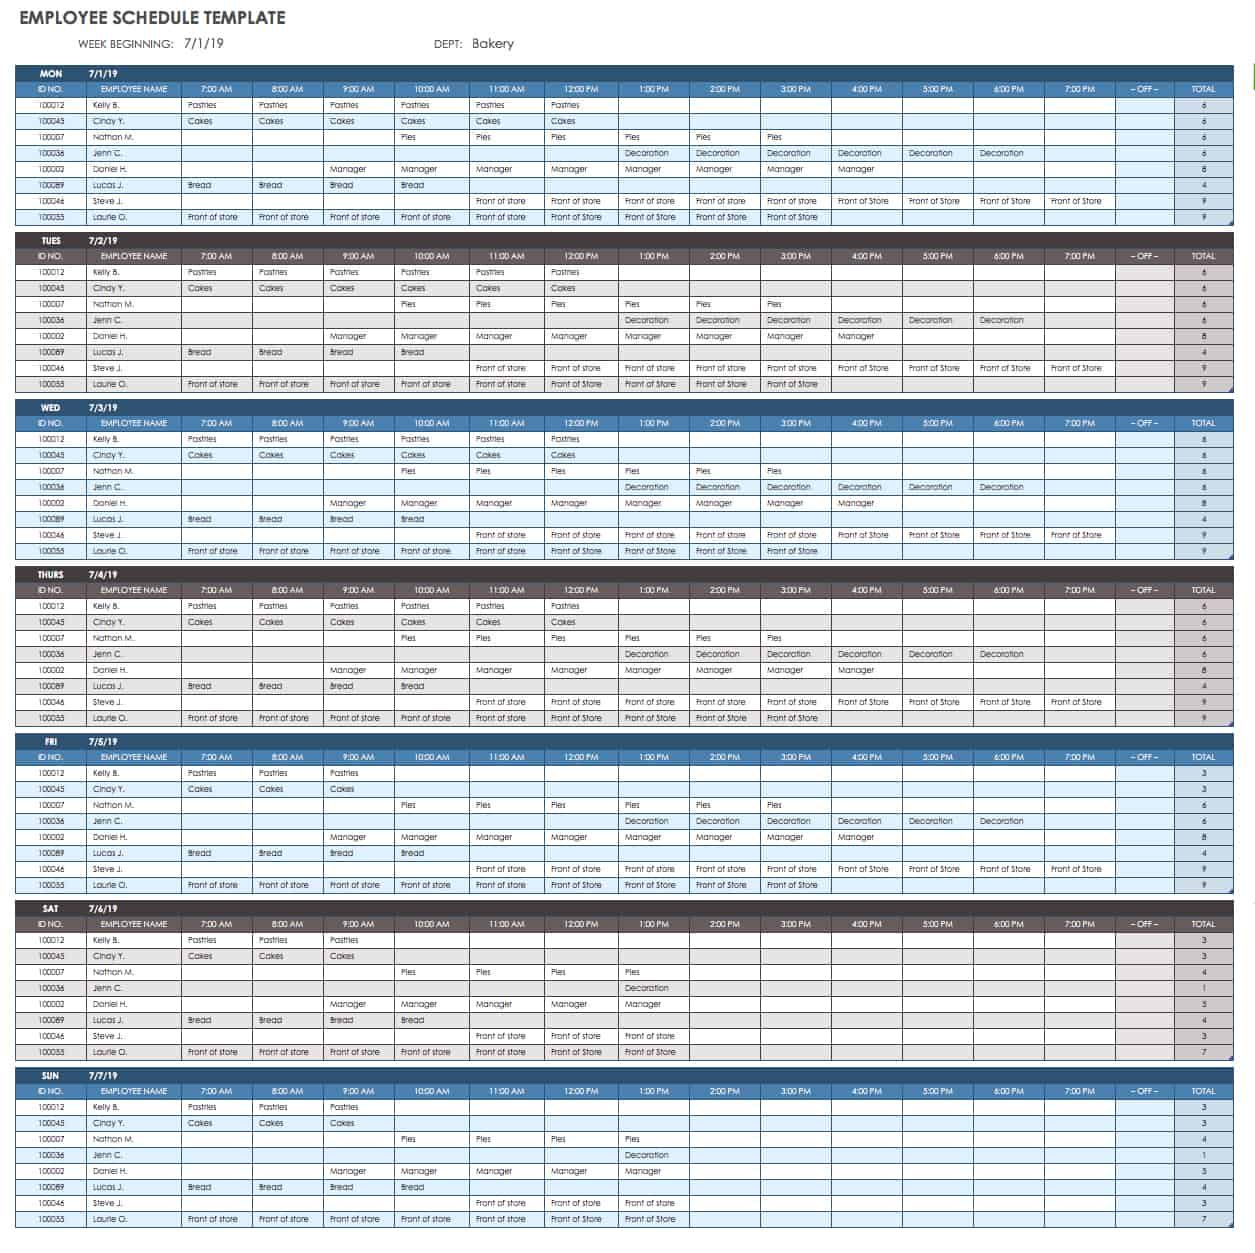 007 Staggering Employee Calendar Template Excel Sample  Staff Leave Vacation PlannerFull